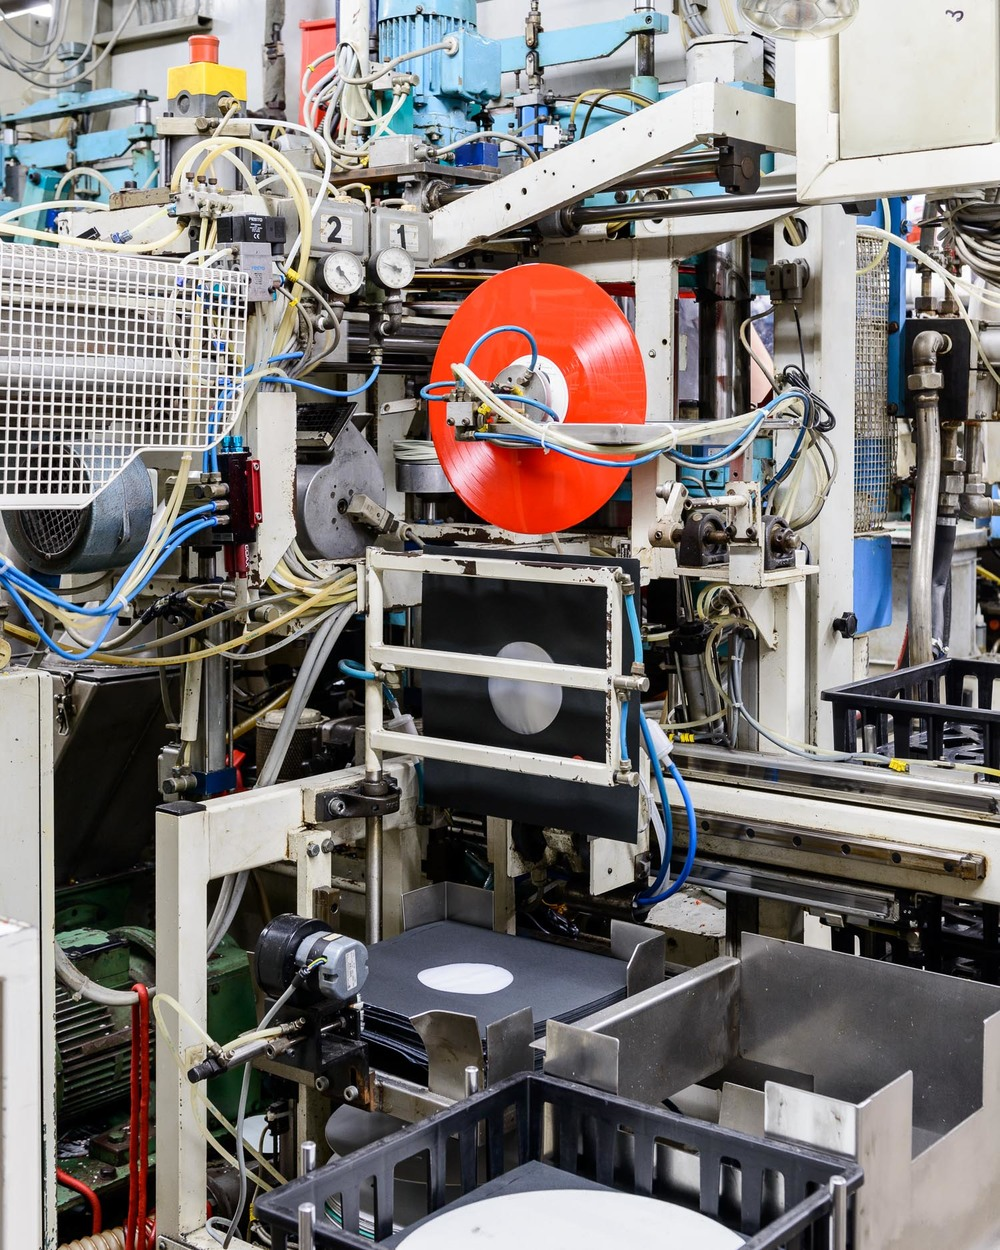 The largest vinyl pressing plant in the world, the Netherlands